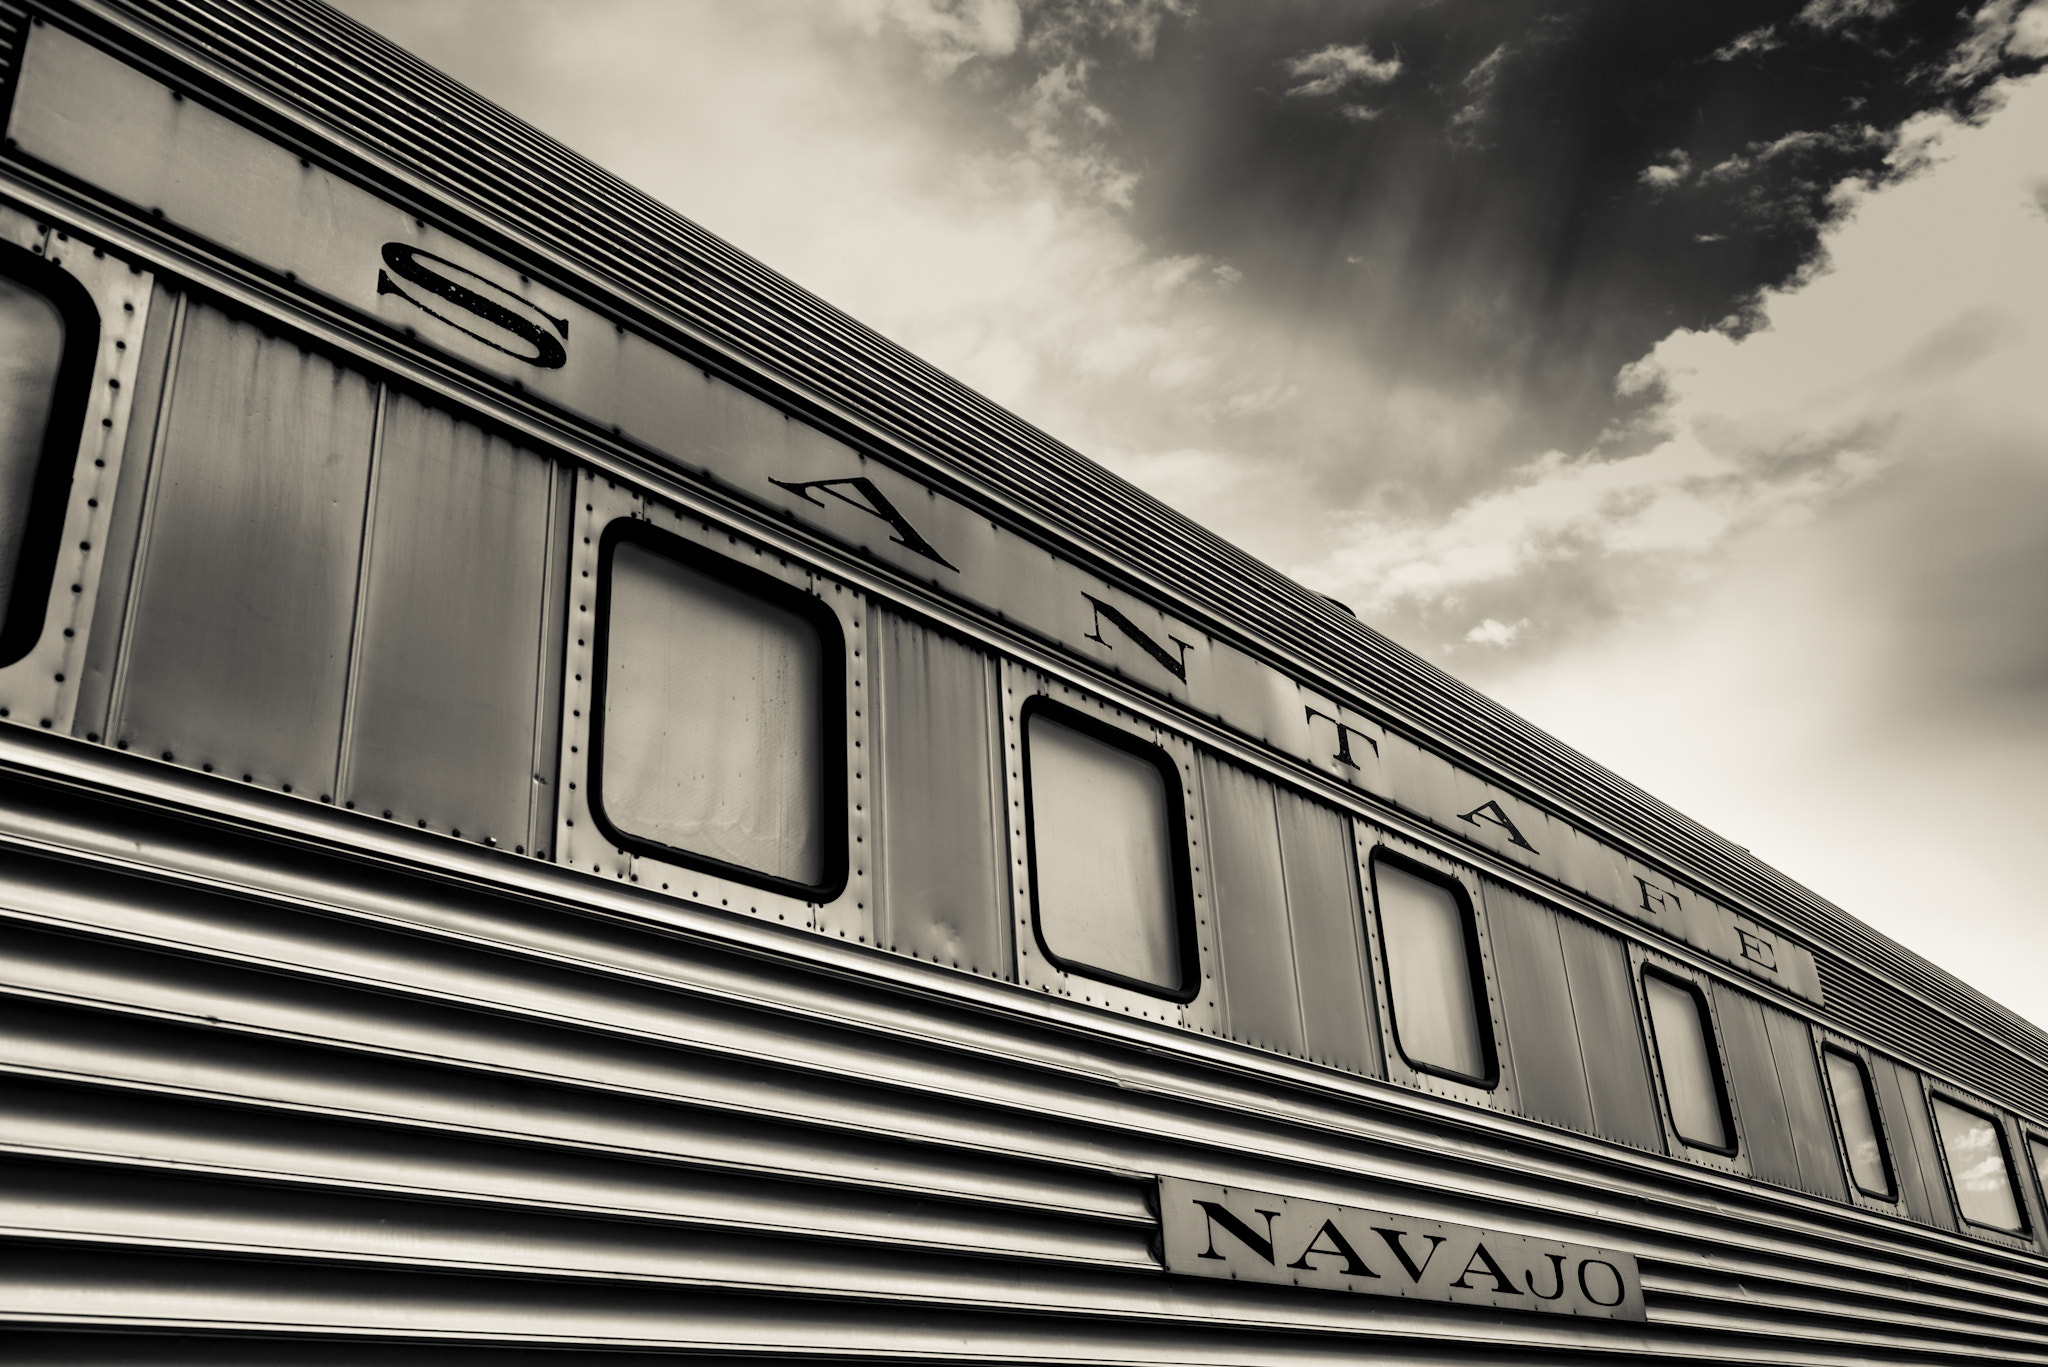 Photograph Santa Fe by Geoff Ridenour on 500px